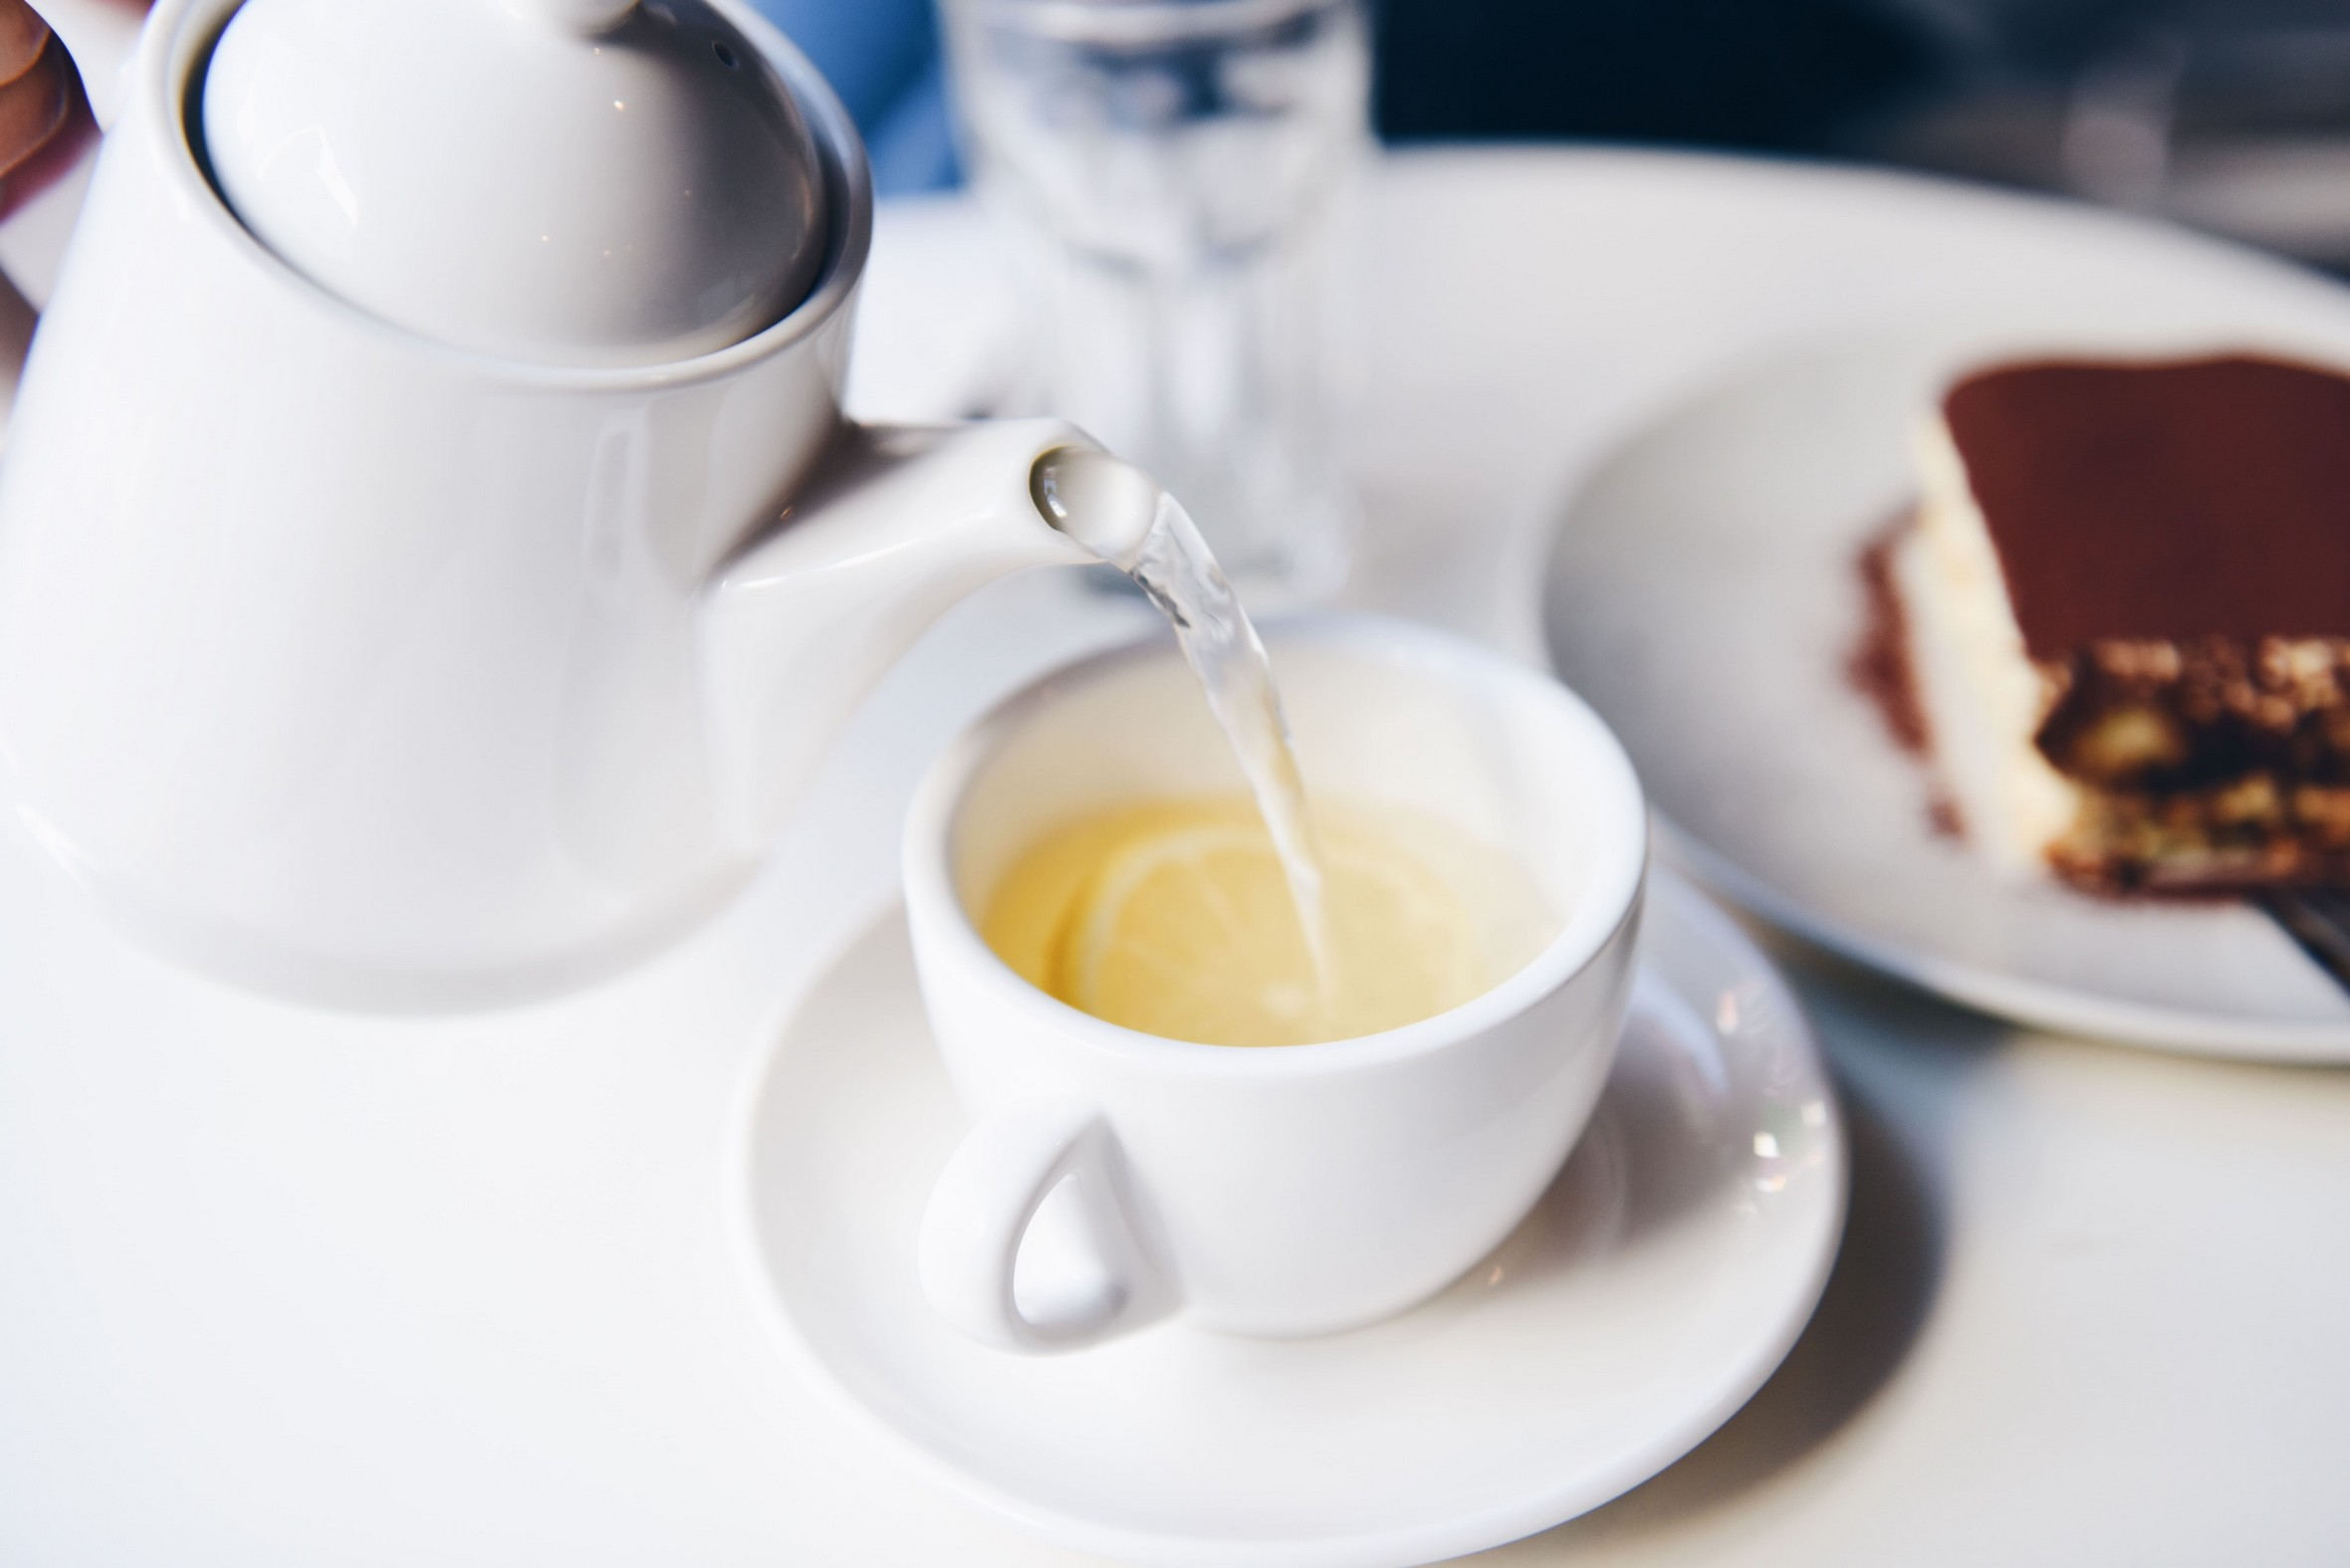 white cup and teapot, which is pouring clear liquid into the mug with a lemon slice.